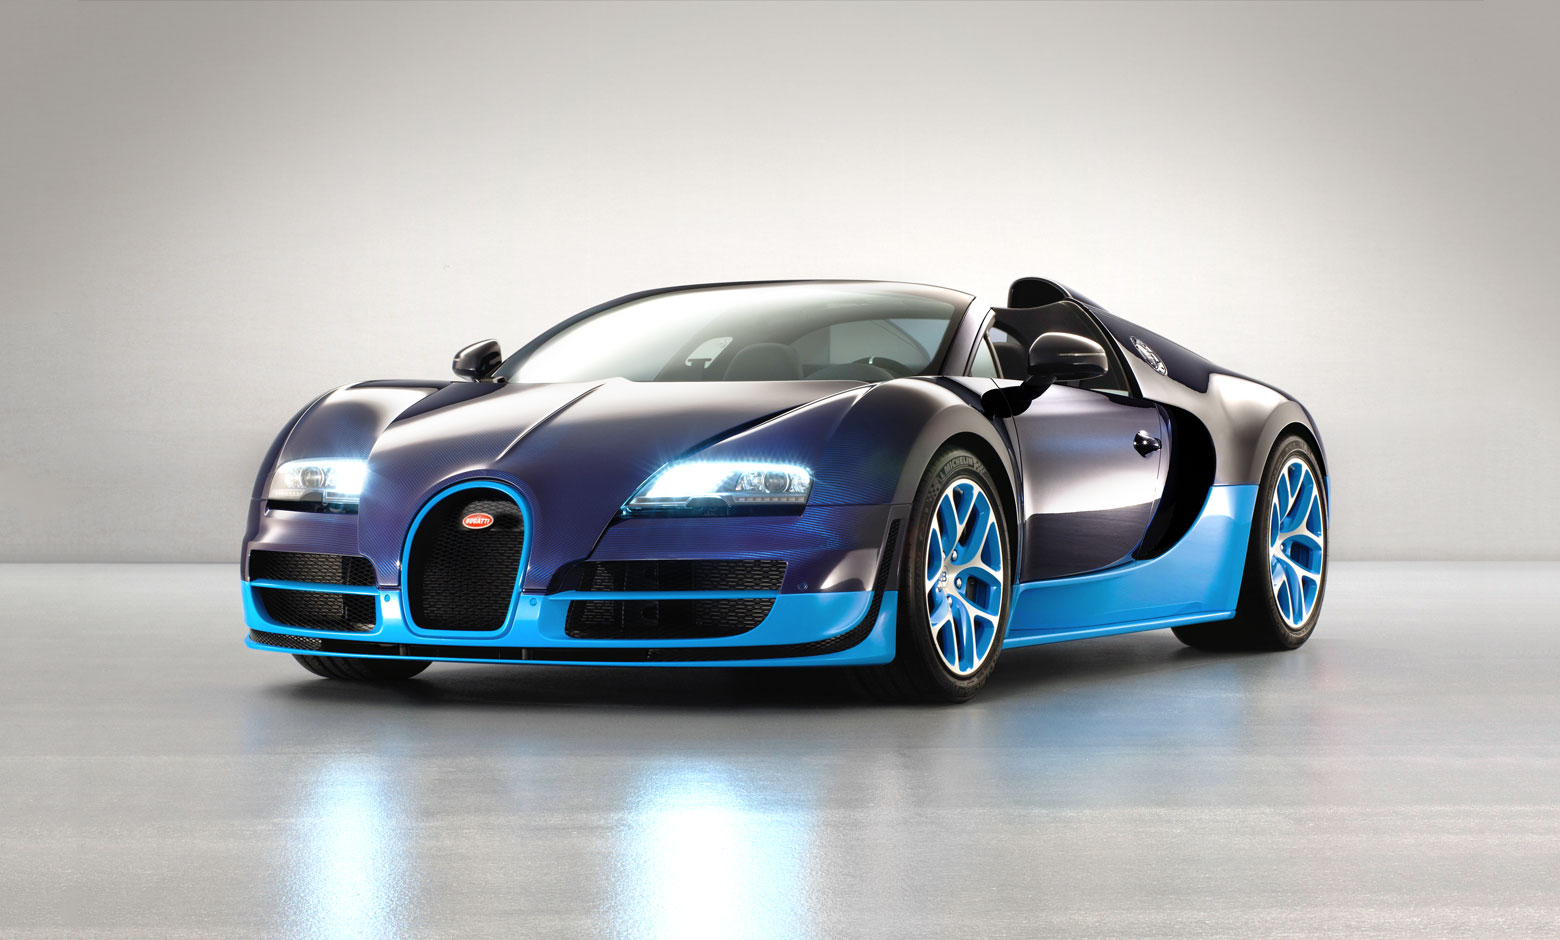 2019 Bugatti Veyron Grand Sport Vitesse photo - 2